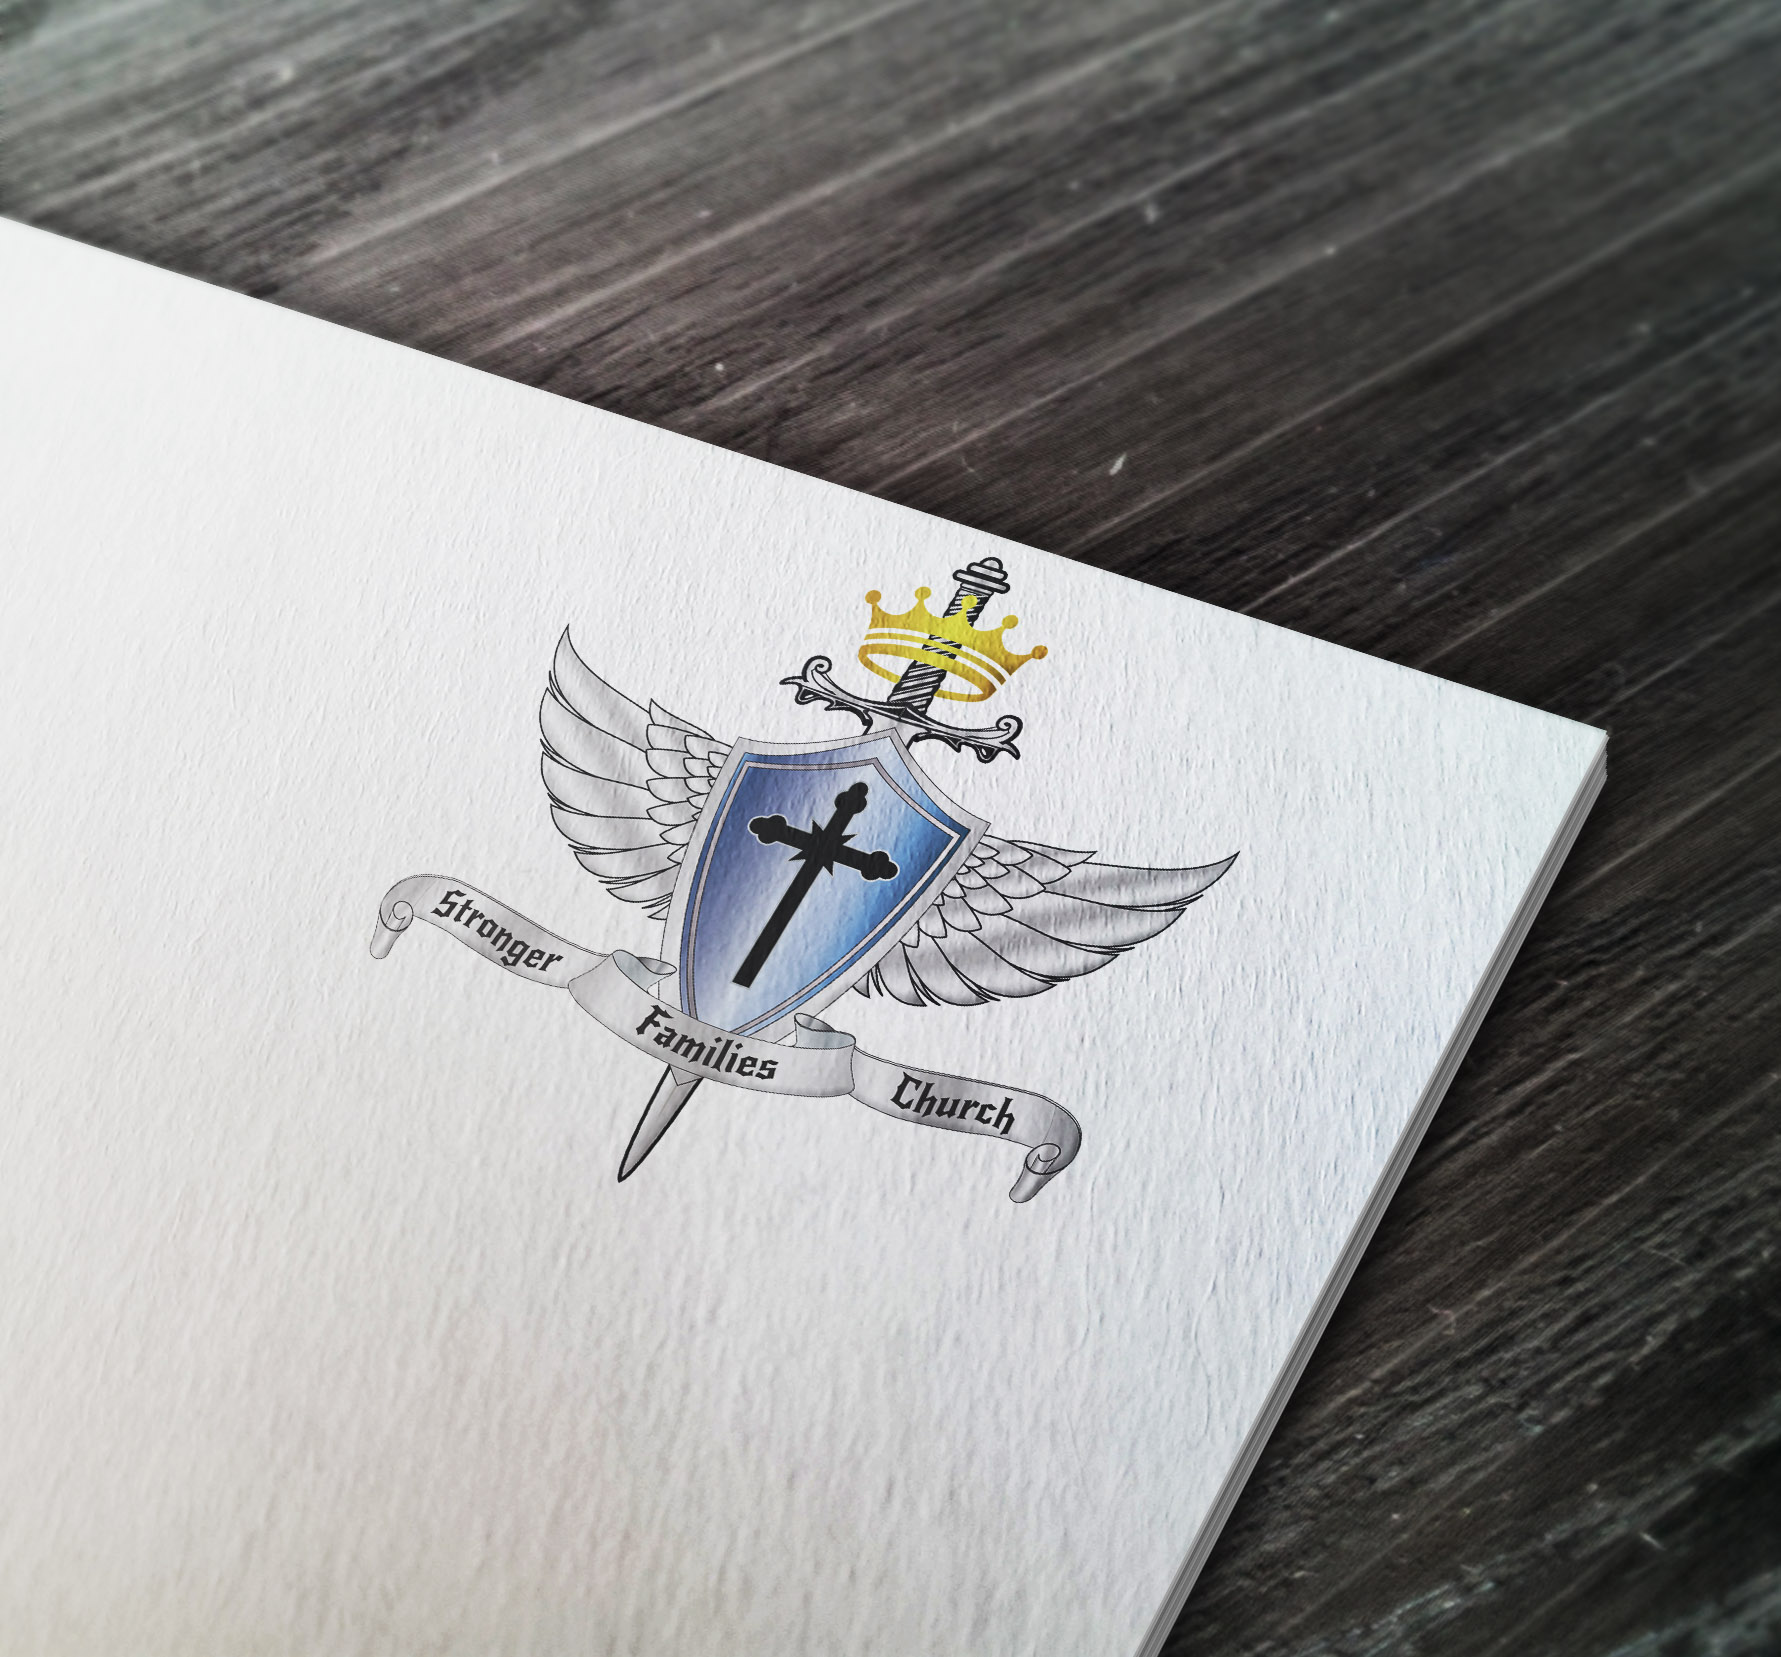 Coat of arms designed for the Stronger Families Church in the USA